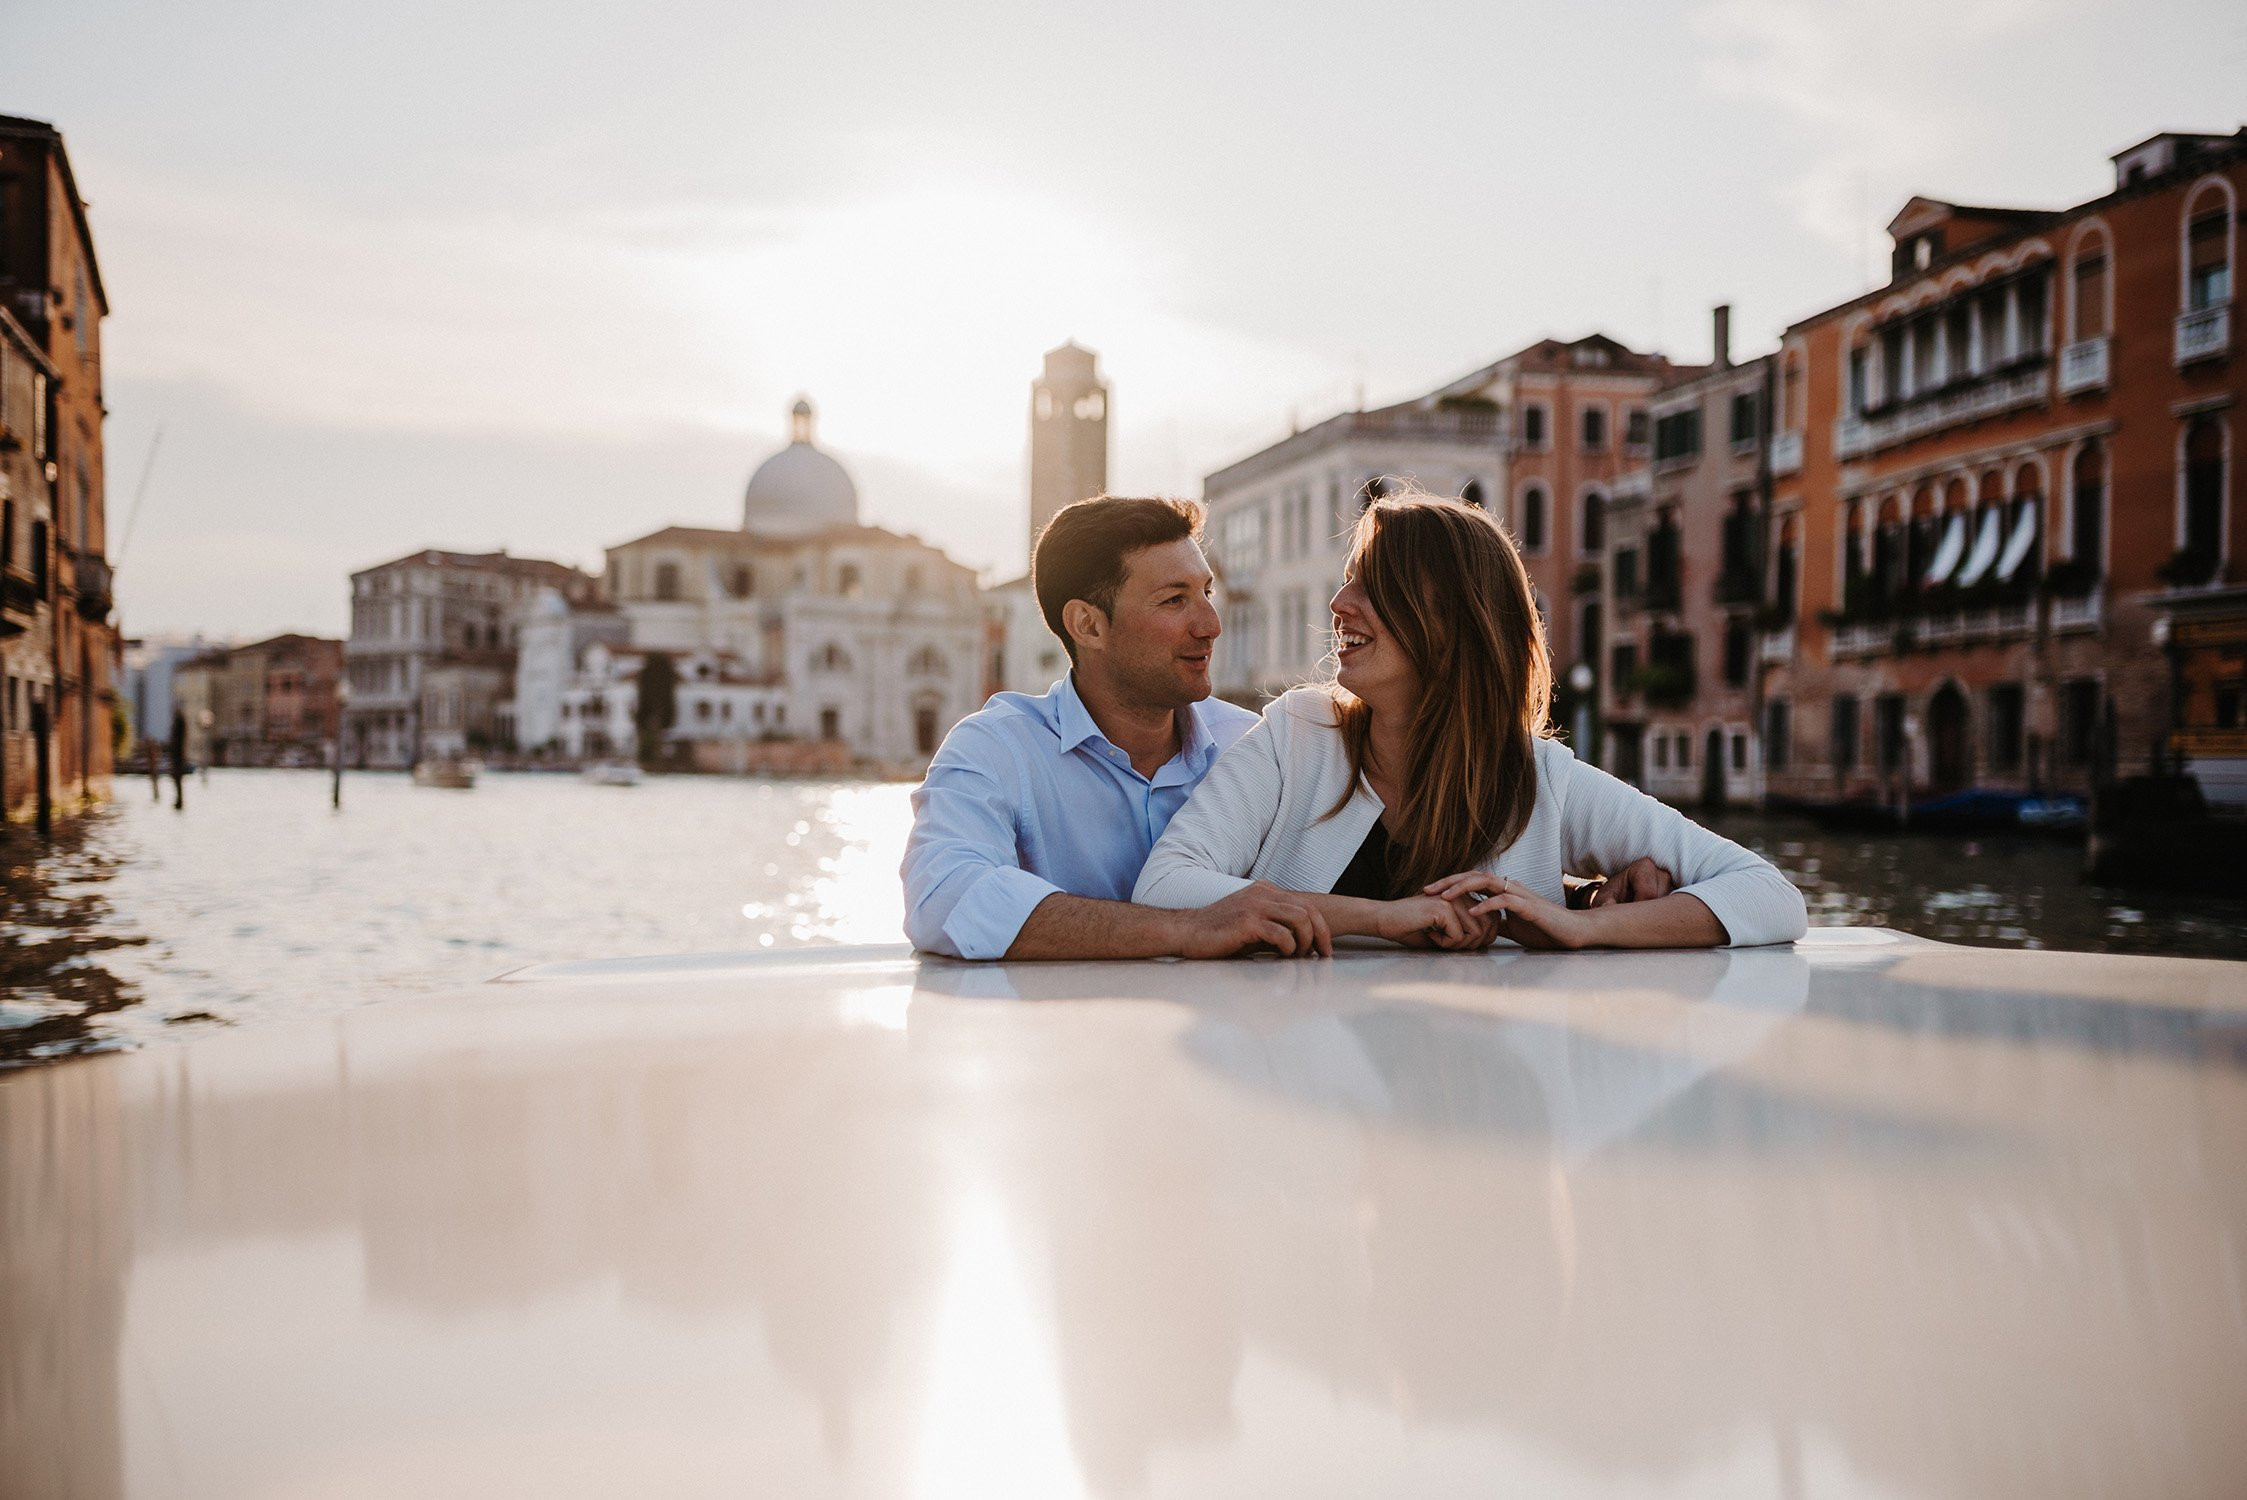 Engagement a Venezia. Servizio Prematrimoniale a Venezia. Luisa Basso Wedding Photographer. Italian Wedding photographer